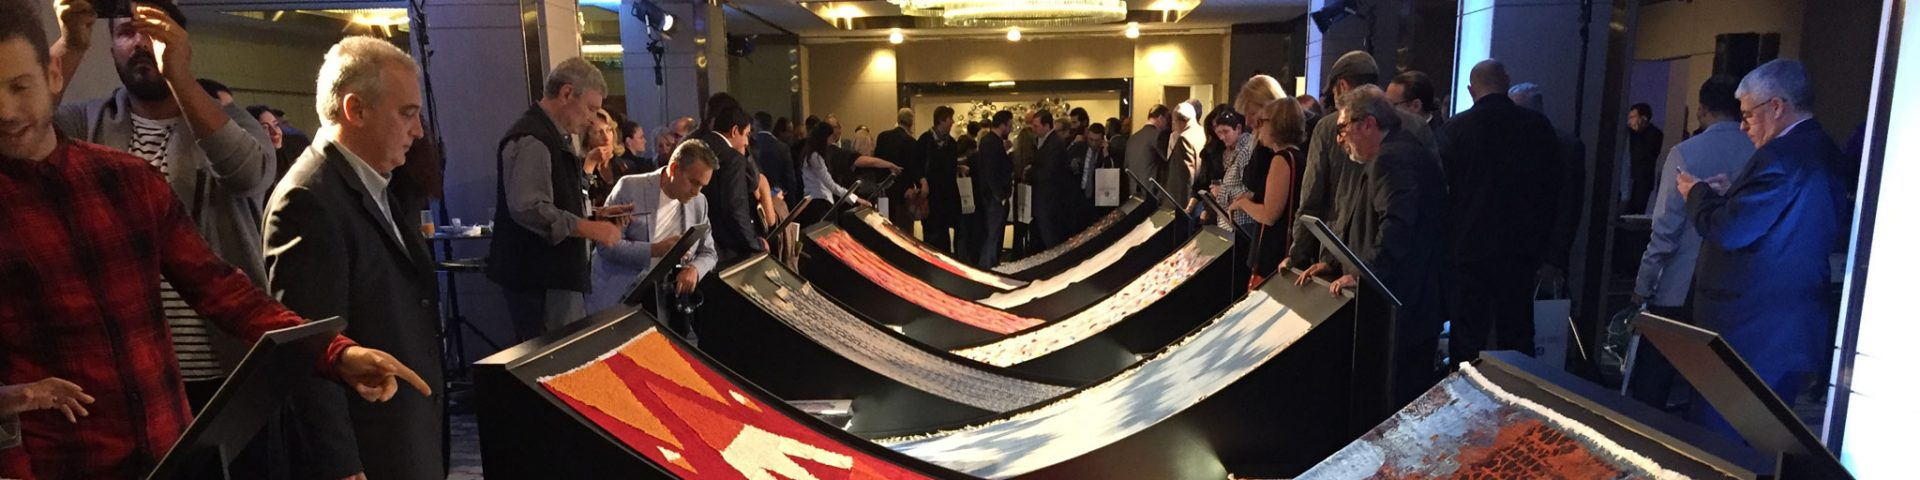 Guests from Turkey and delegates from afar gathered on Friday, 7 October 2016 for the Gala including the 10th Annual IHIB National Carpet Design Awards. | The Ruggist.